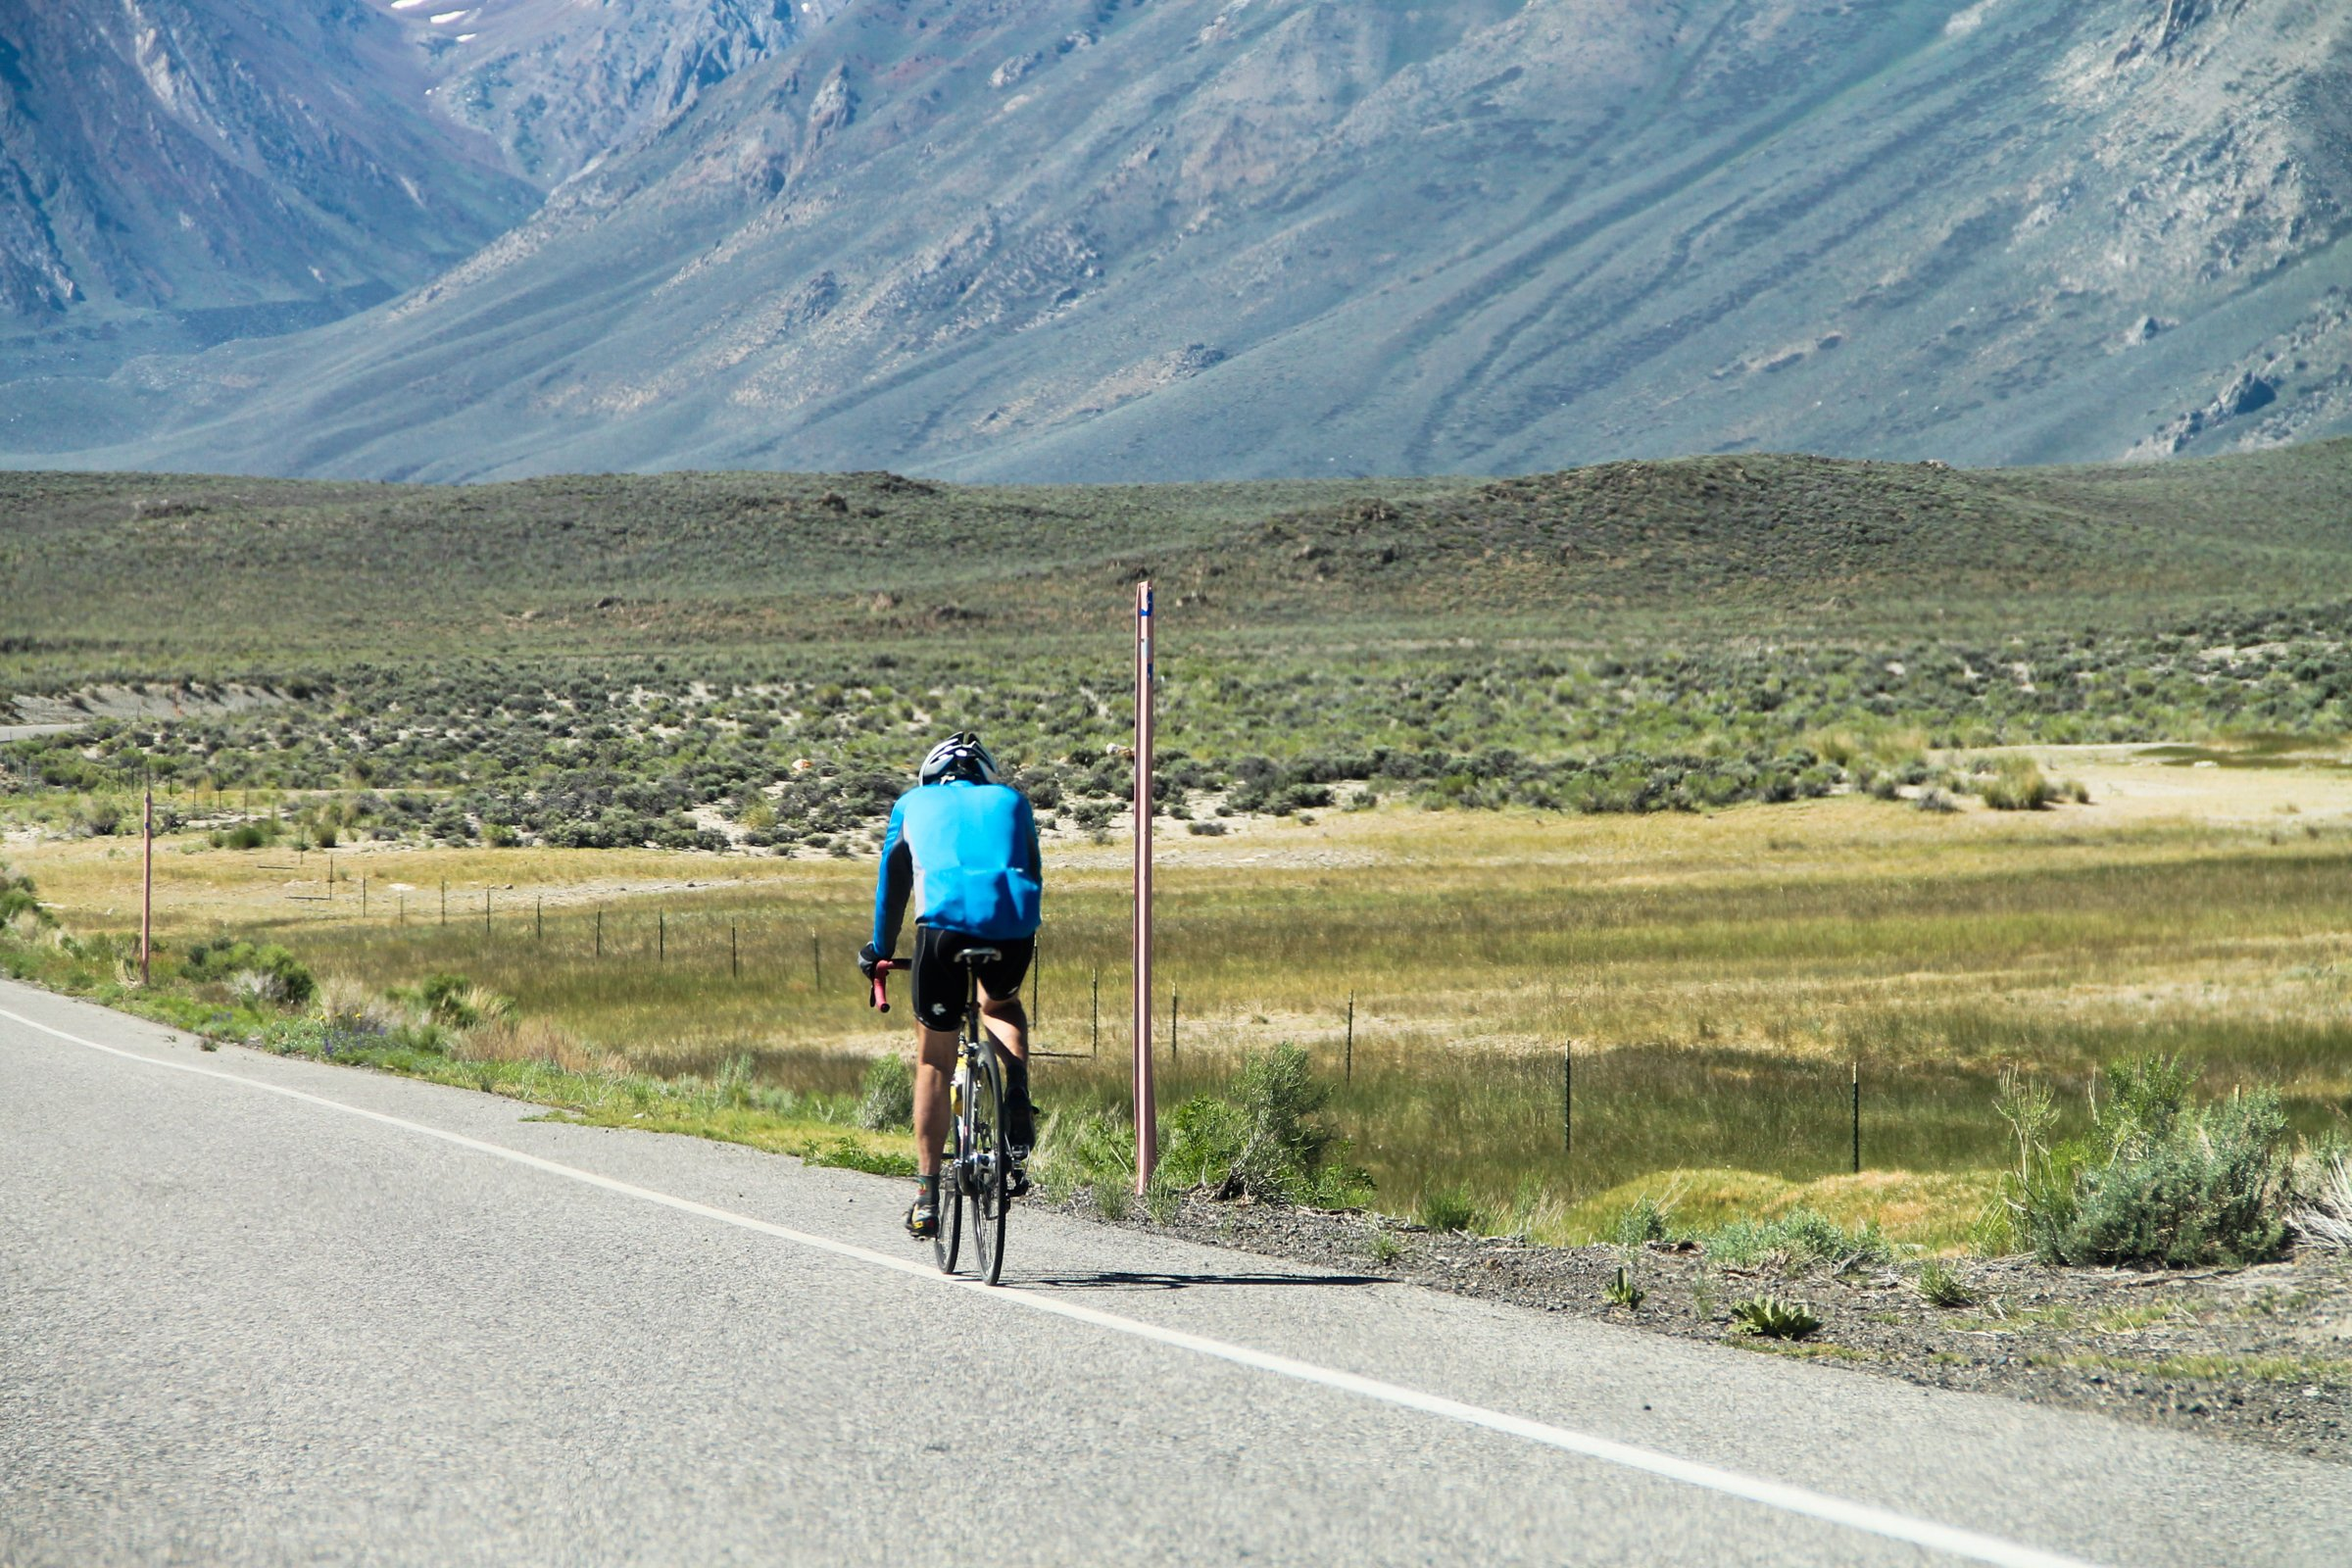 Bicyclist on Road by Fields & Mountain